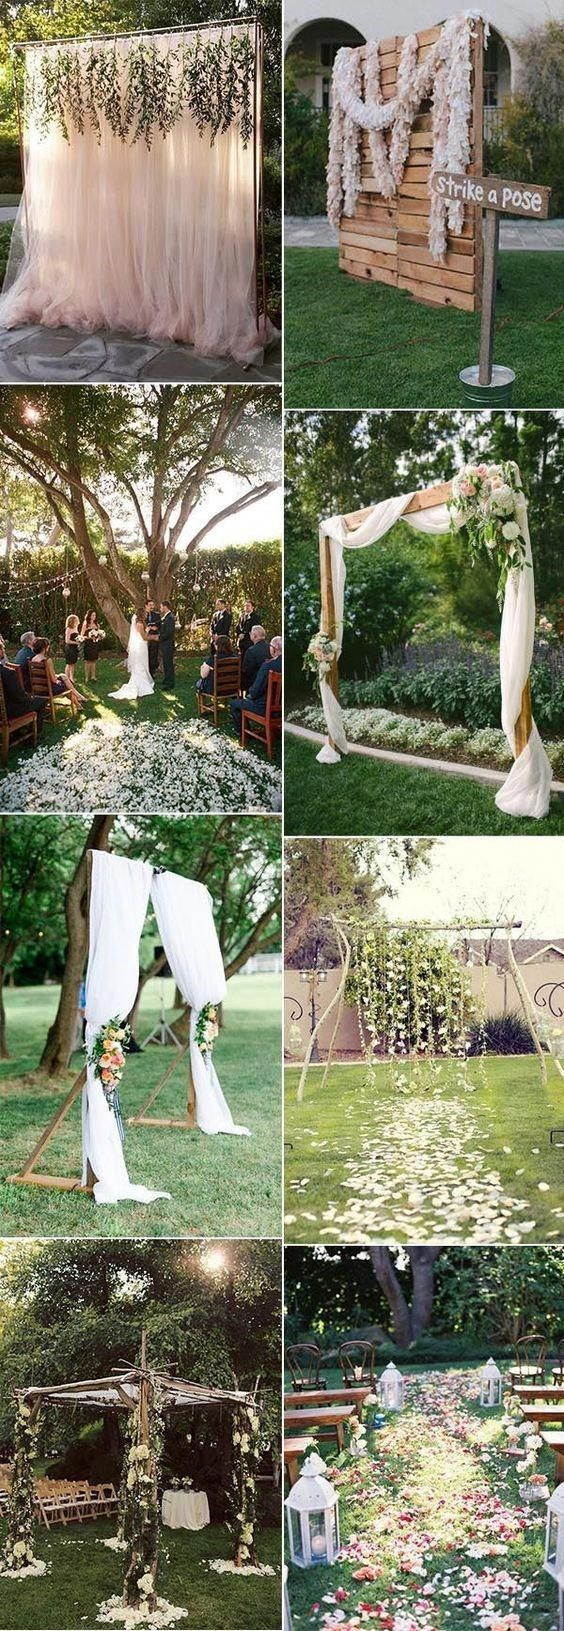 Helpful rustic wedding ideas #rusticweddingideas